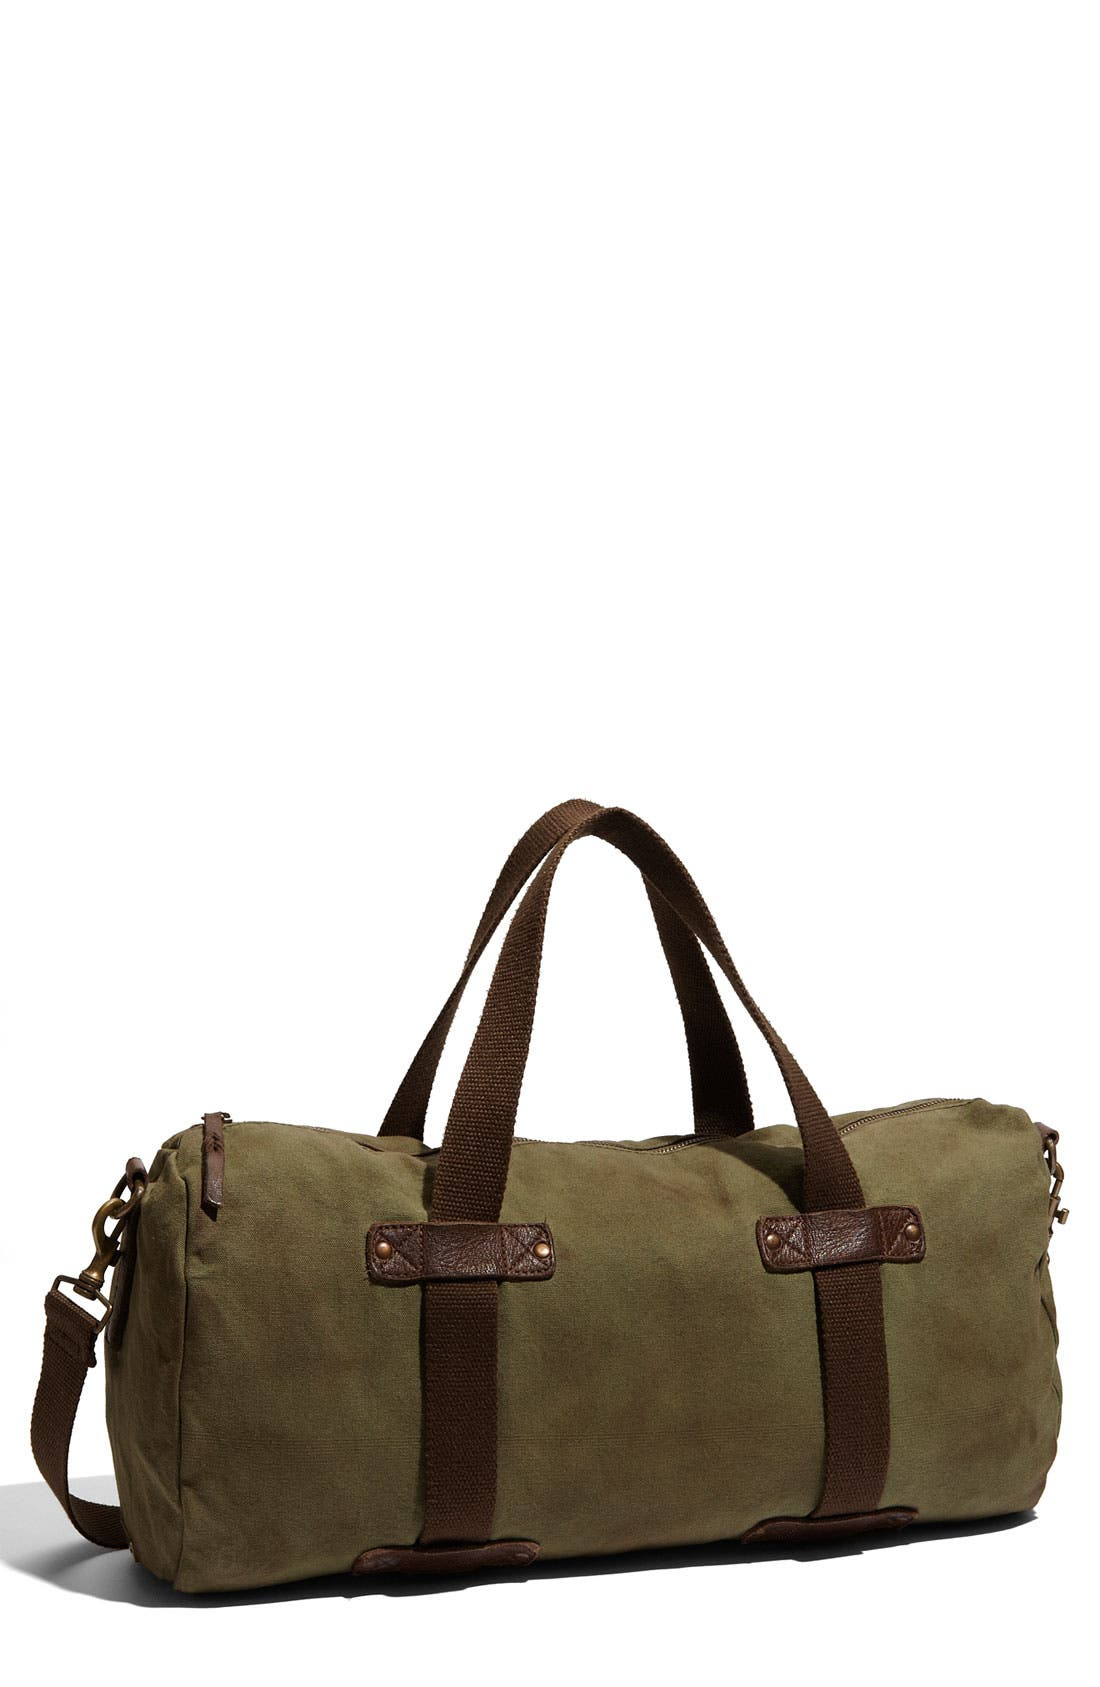 Alternate Image 1 Selected - Alternative Canvas Duffel Bag